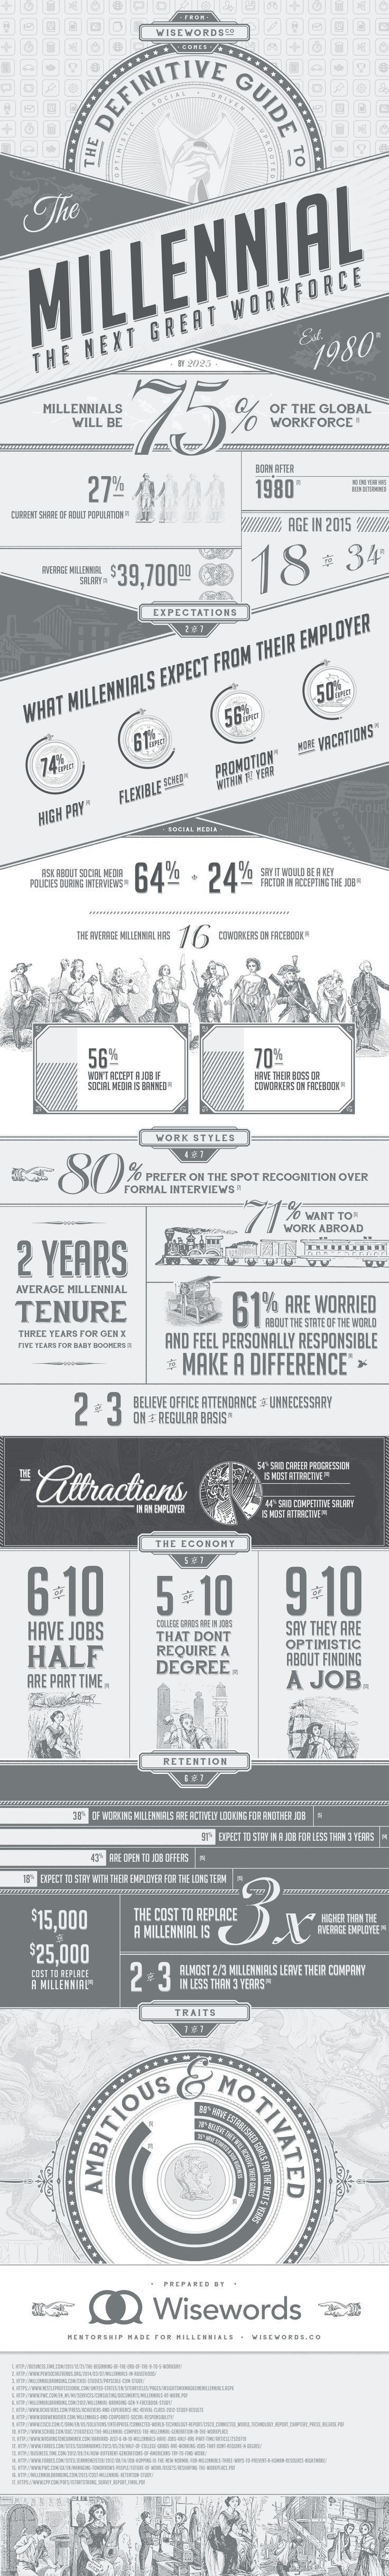 [Infographic] The Definitive Guide to the Millennial Workforce